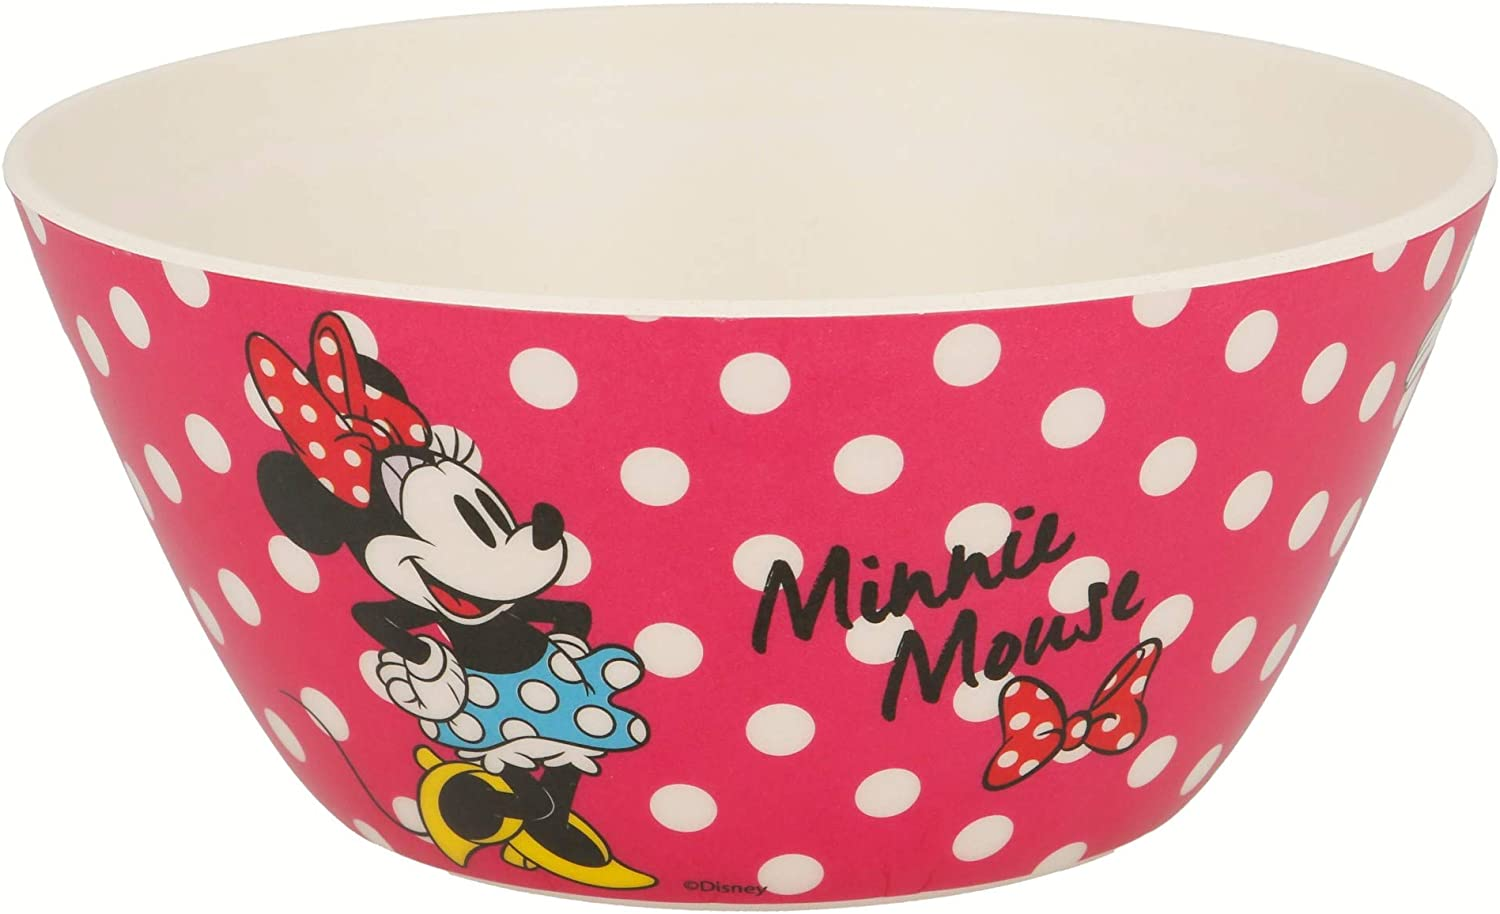 CUENCO BAMBU CONICO MINNIE MOUSE - DISNEY - GLAM DOTS: Amazon.es ...